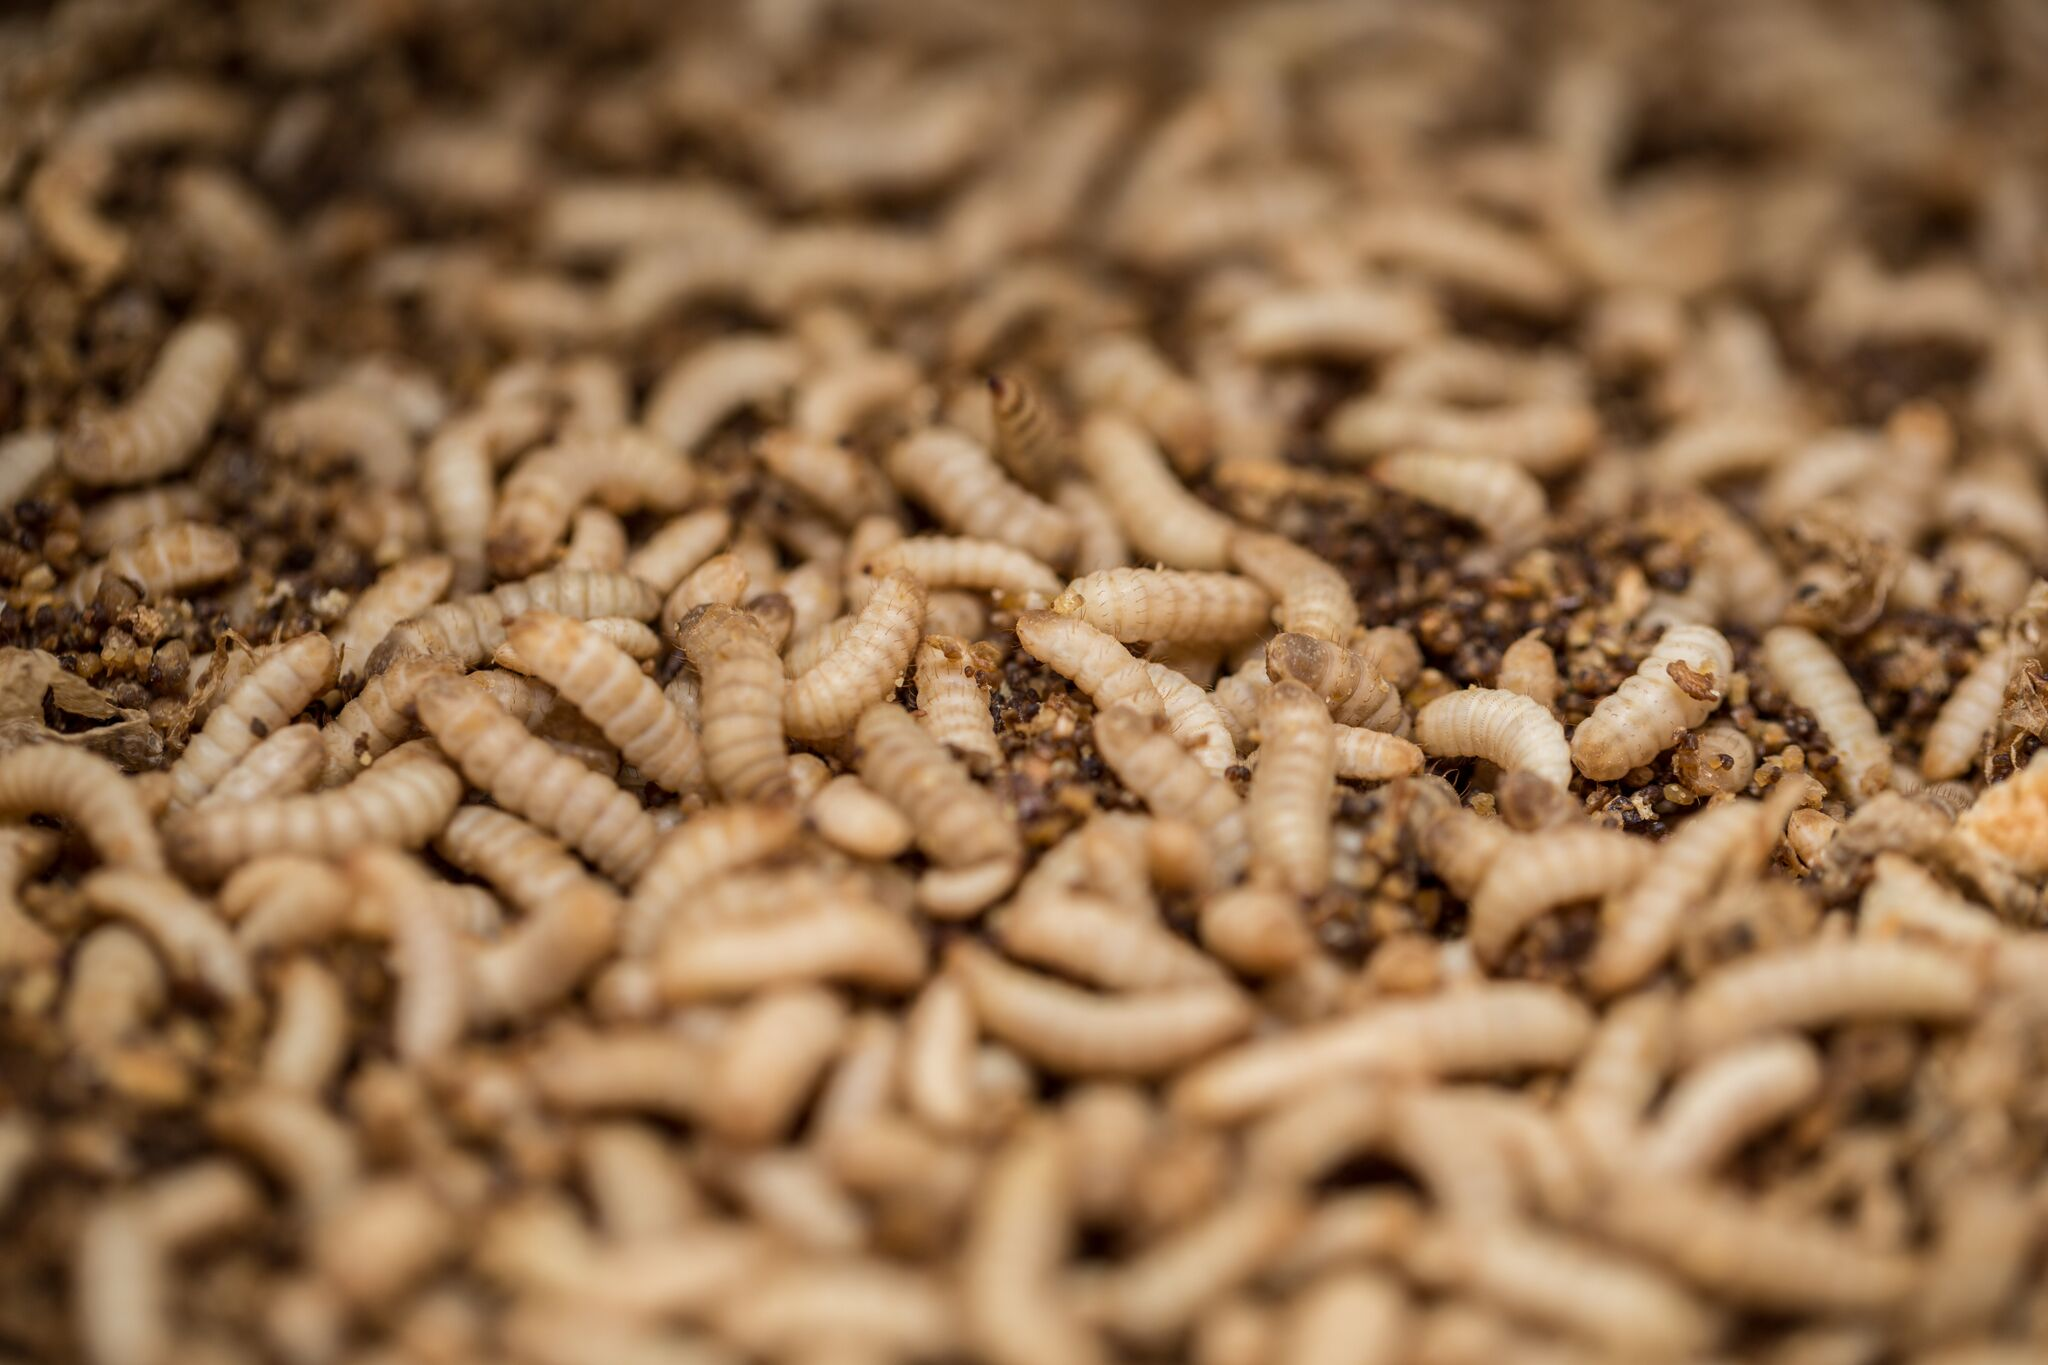 larvae organic waste bioconversion animal feed